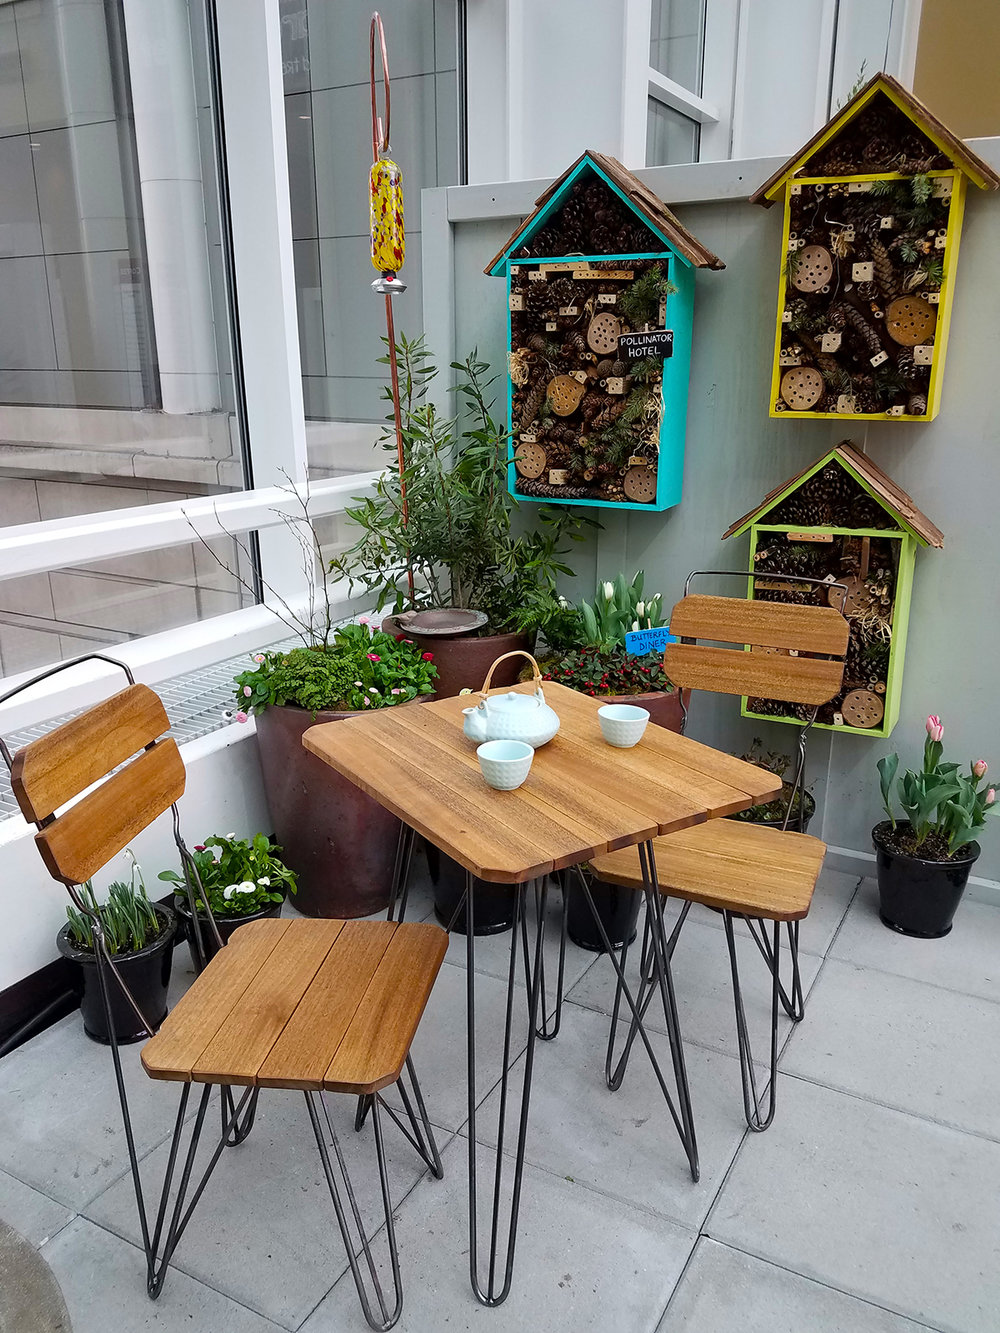 Reclaimed wood bistro set by James Taylor @ Ballard Reuse.  Pollinator Hotels by IslandWood Learning Center.